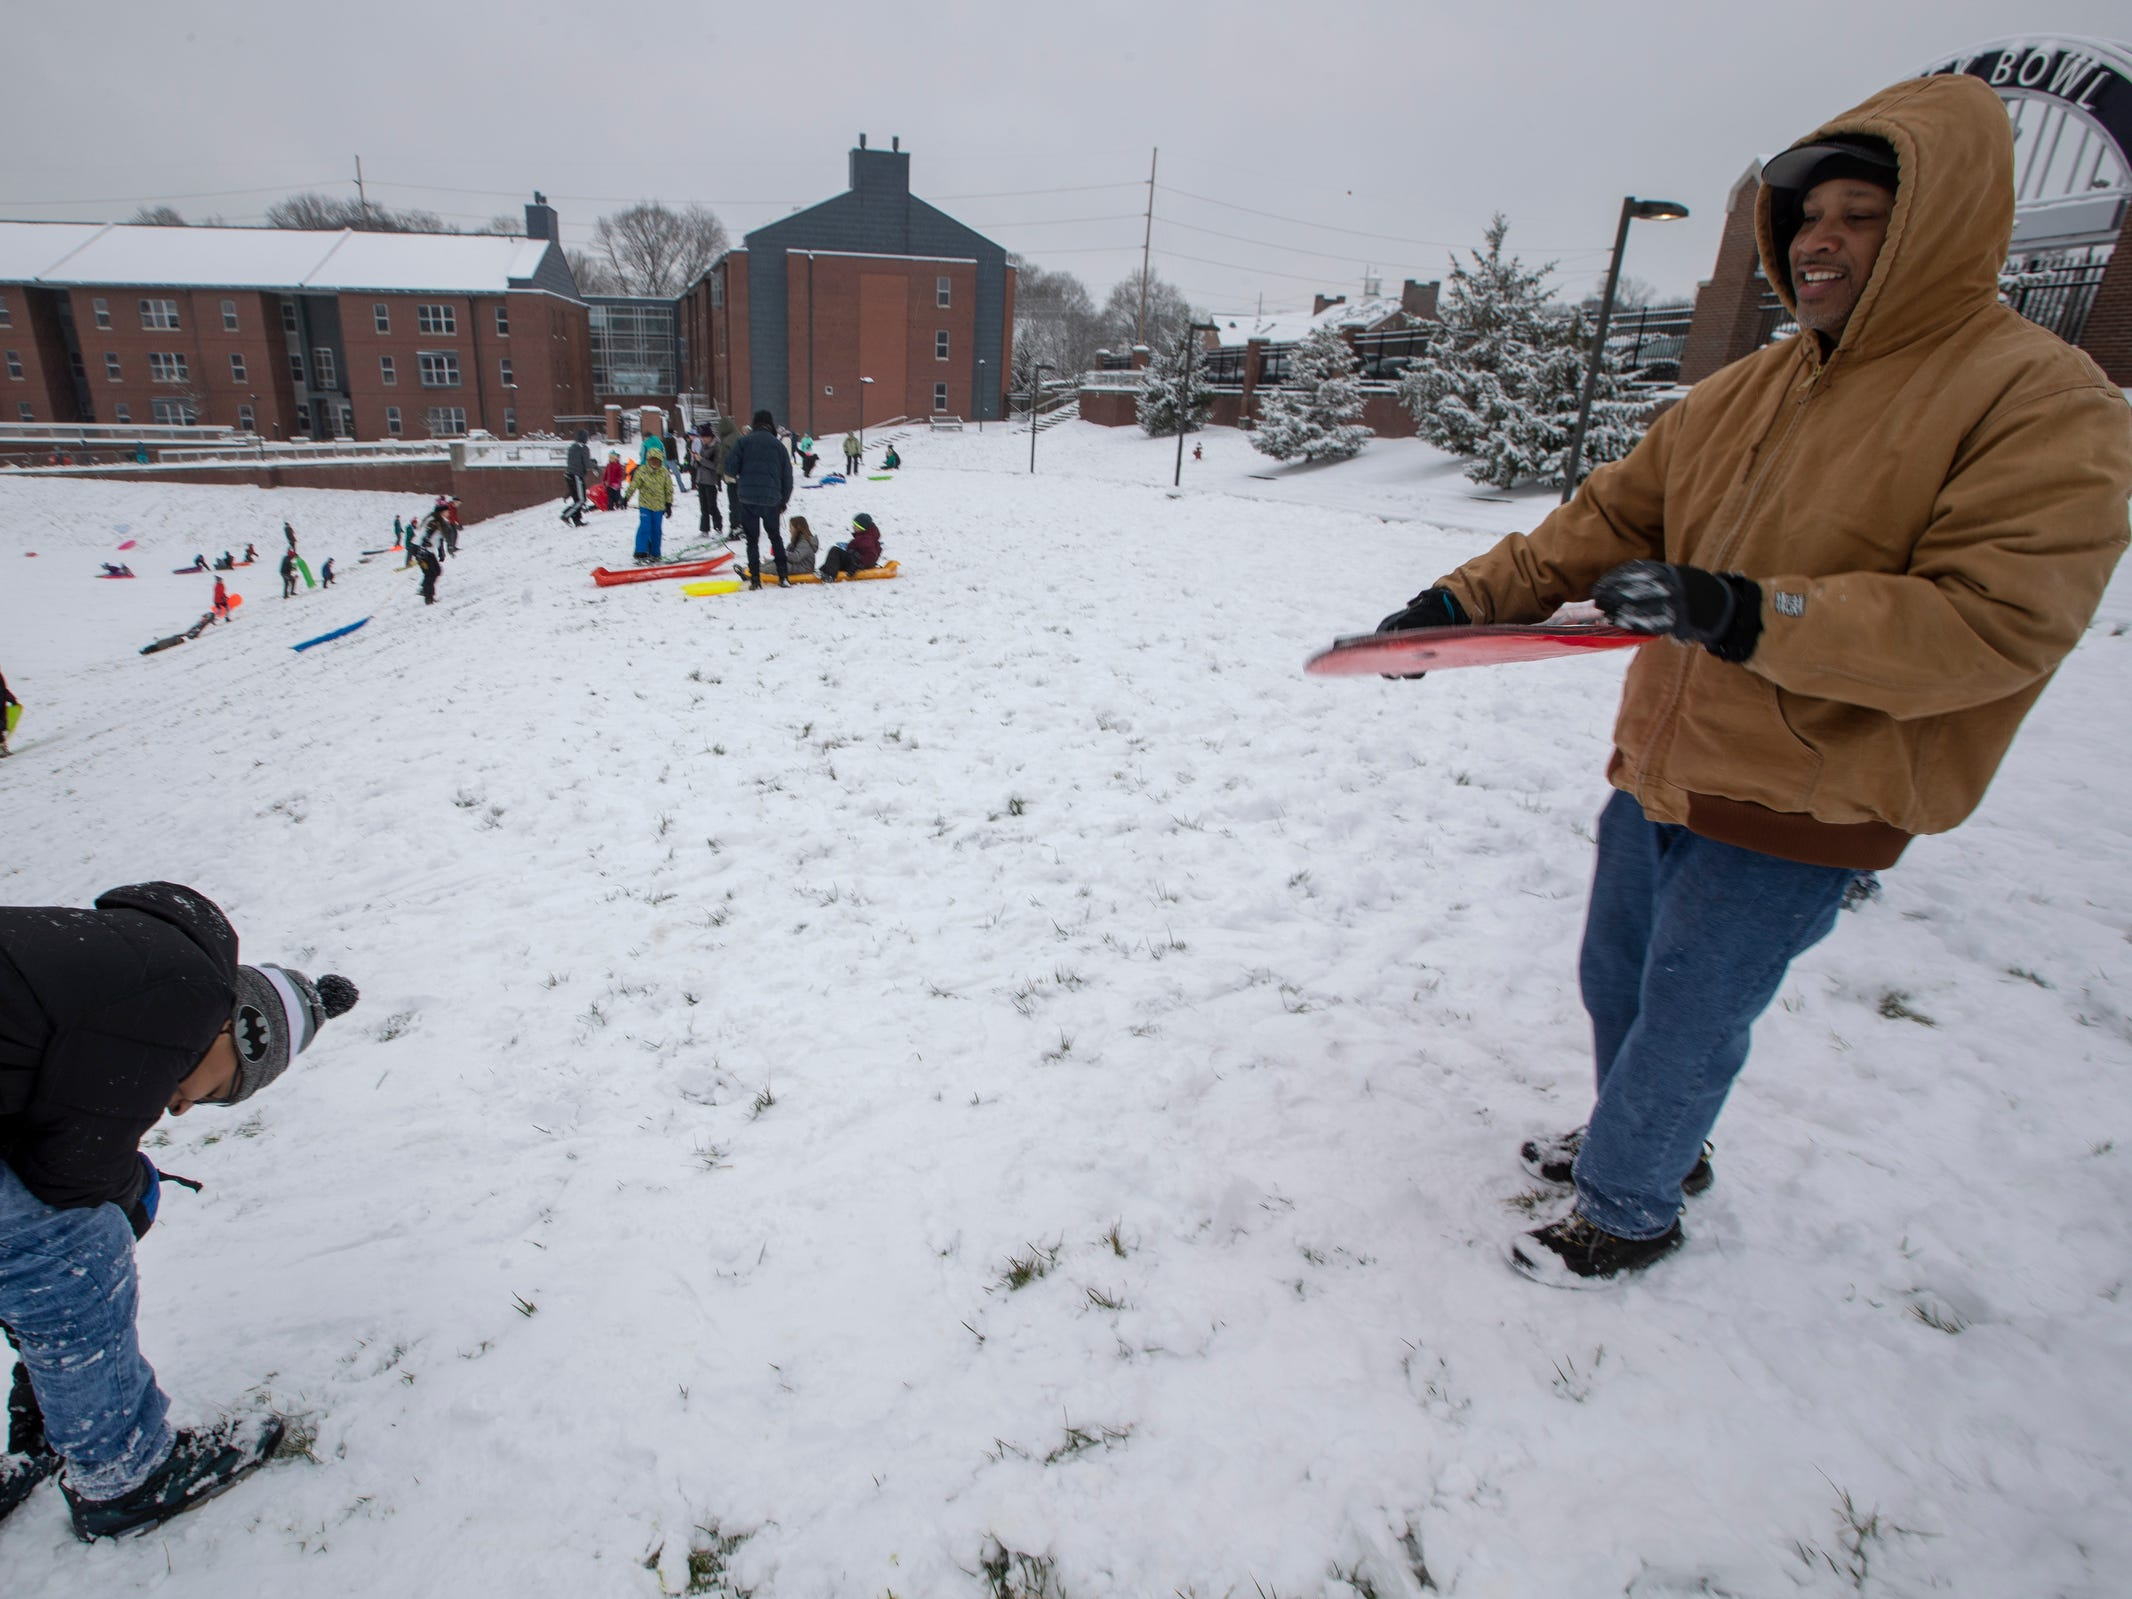 Damon Scott (right), joins a full house for sledding at the football stadium's hill at Butler University on a day where 5-7 inches of snow is expected to fall in Central Indiana, Indianapolis, Saturday, Jan. 12, 2019.